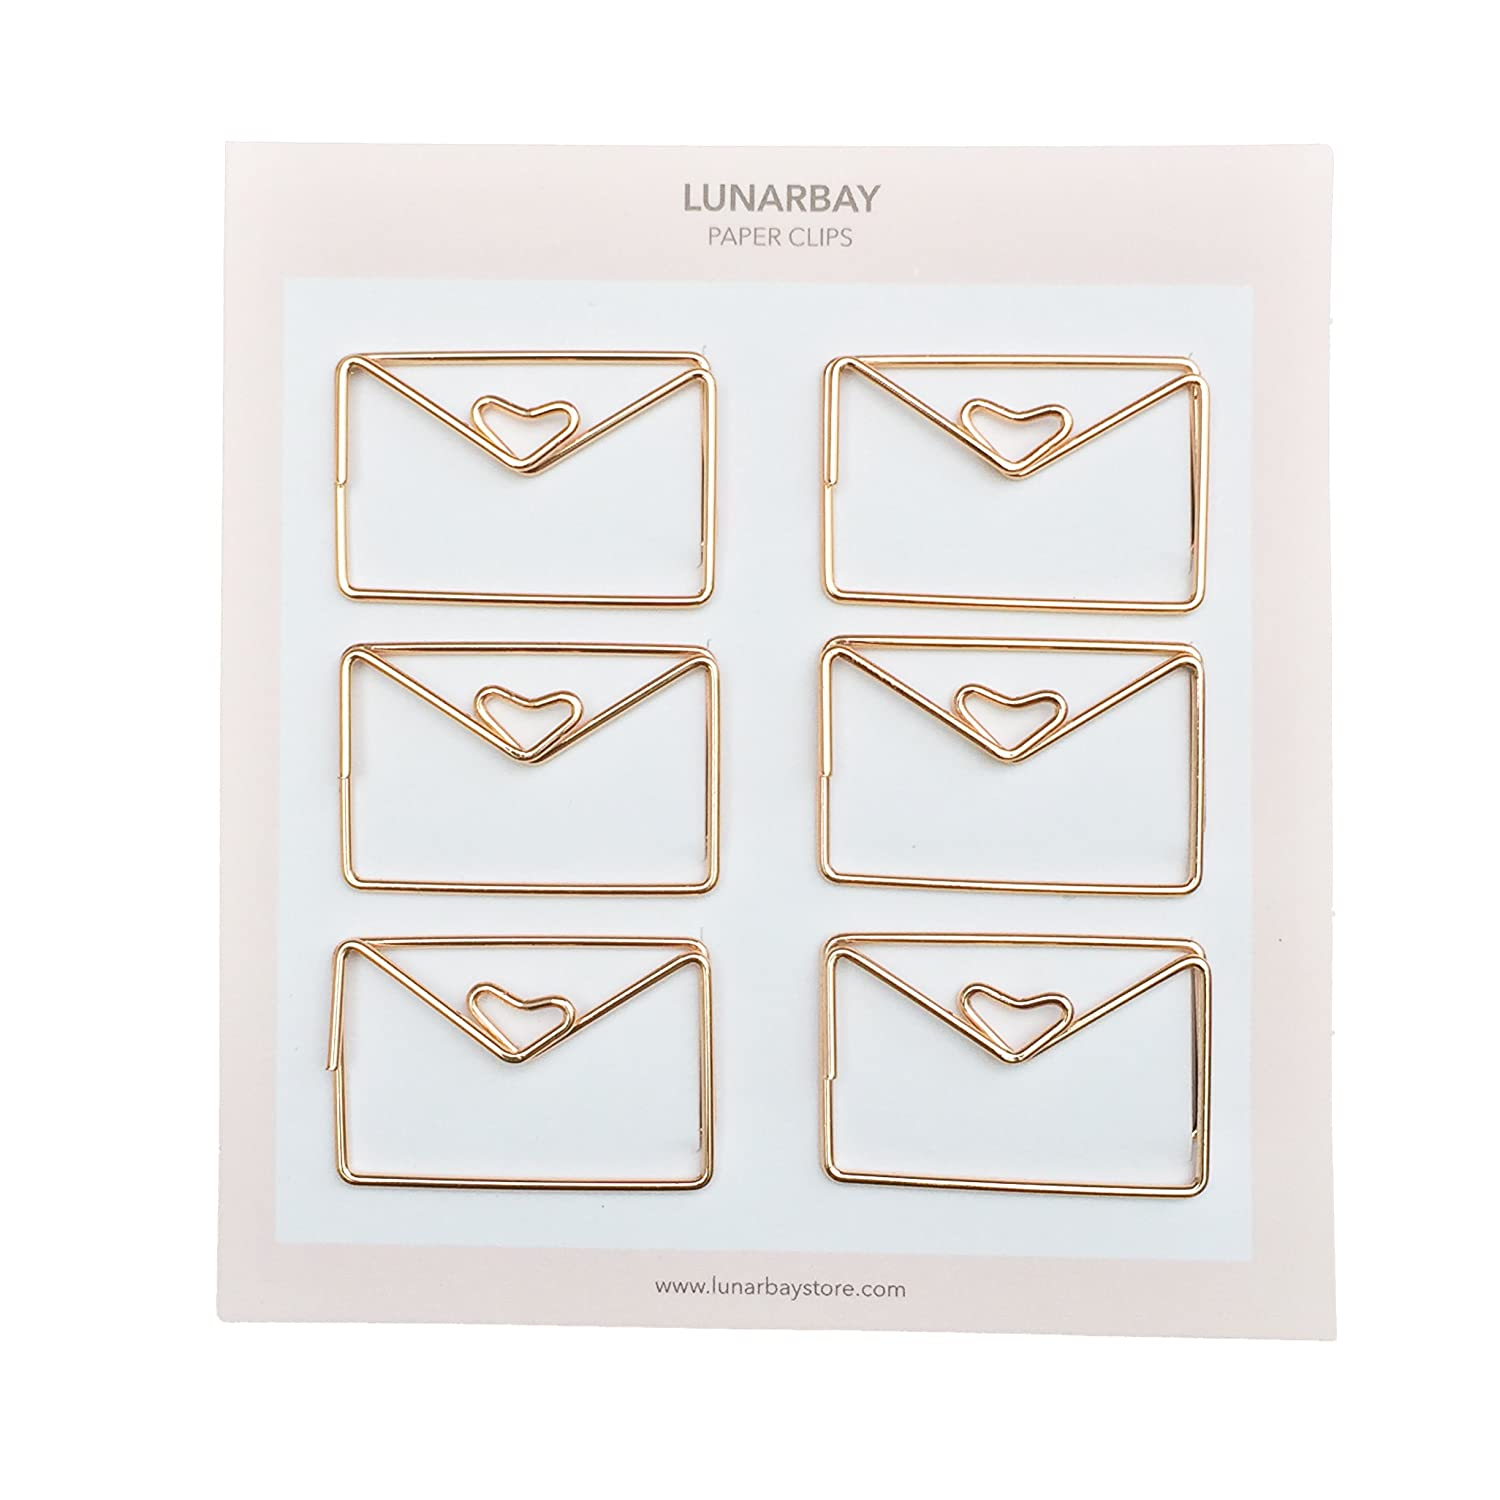 6 x Envelope Paper Clips (Rose Gold) / Cute Paper Clips/Cute Binder Clips/Best Seller/Best Selling Paper Clips/Lunarbaystore.com